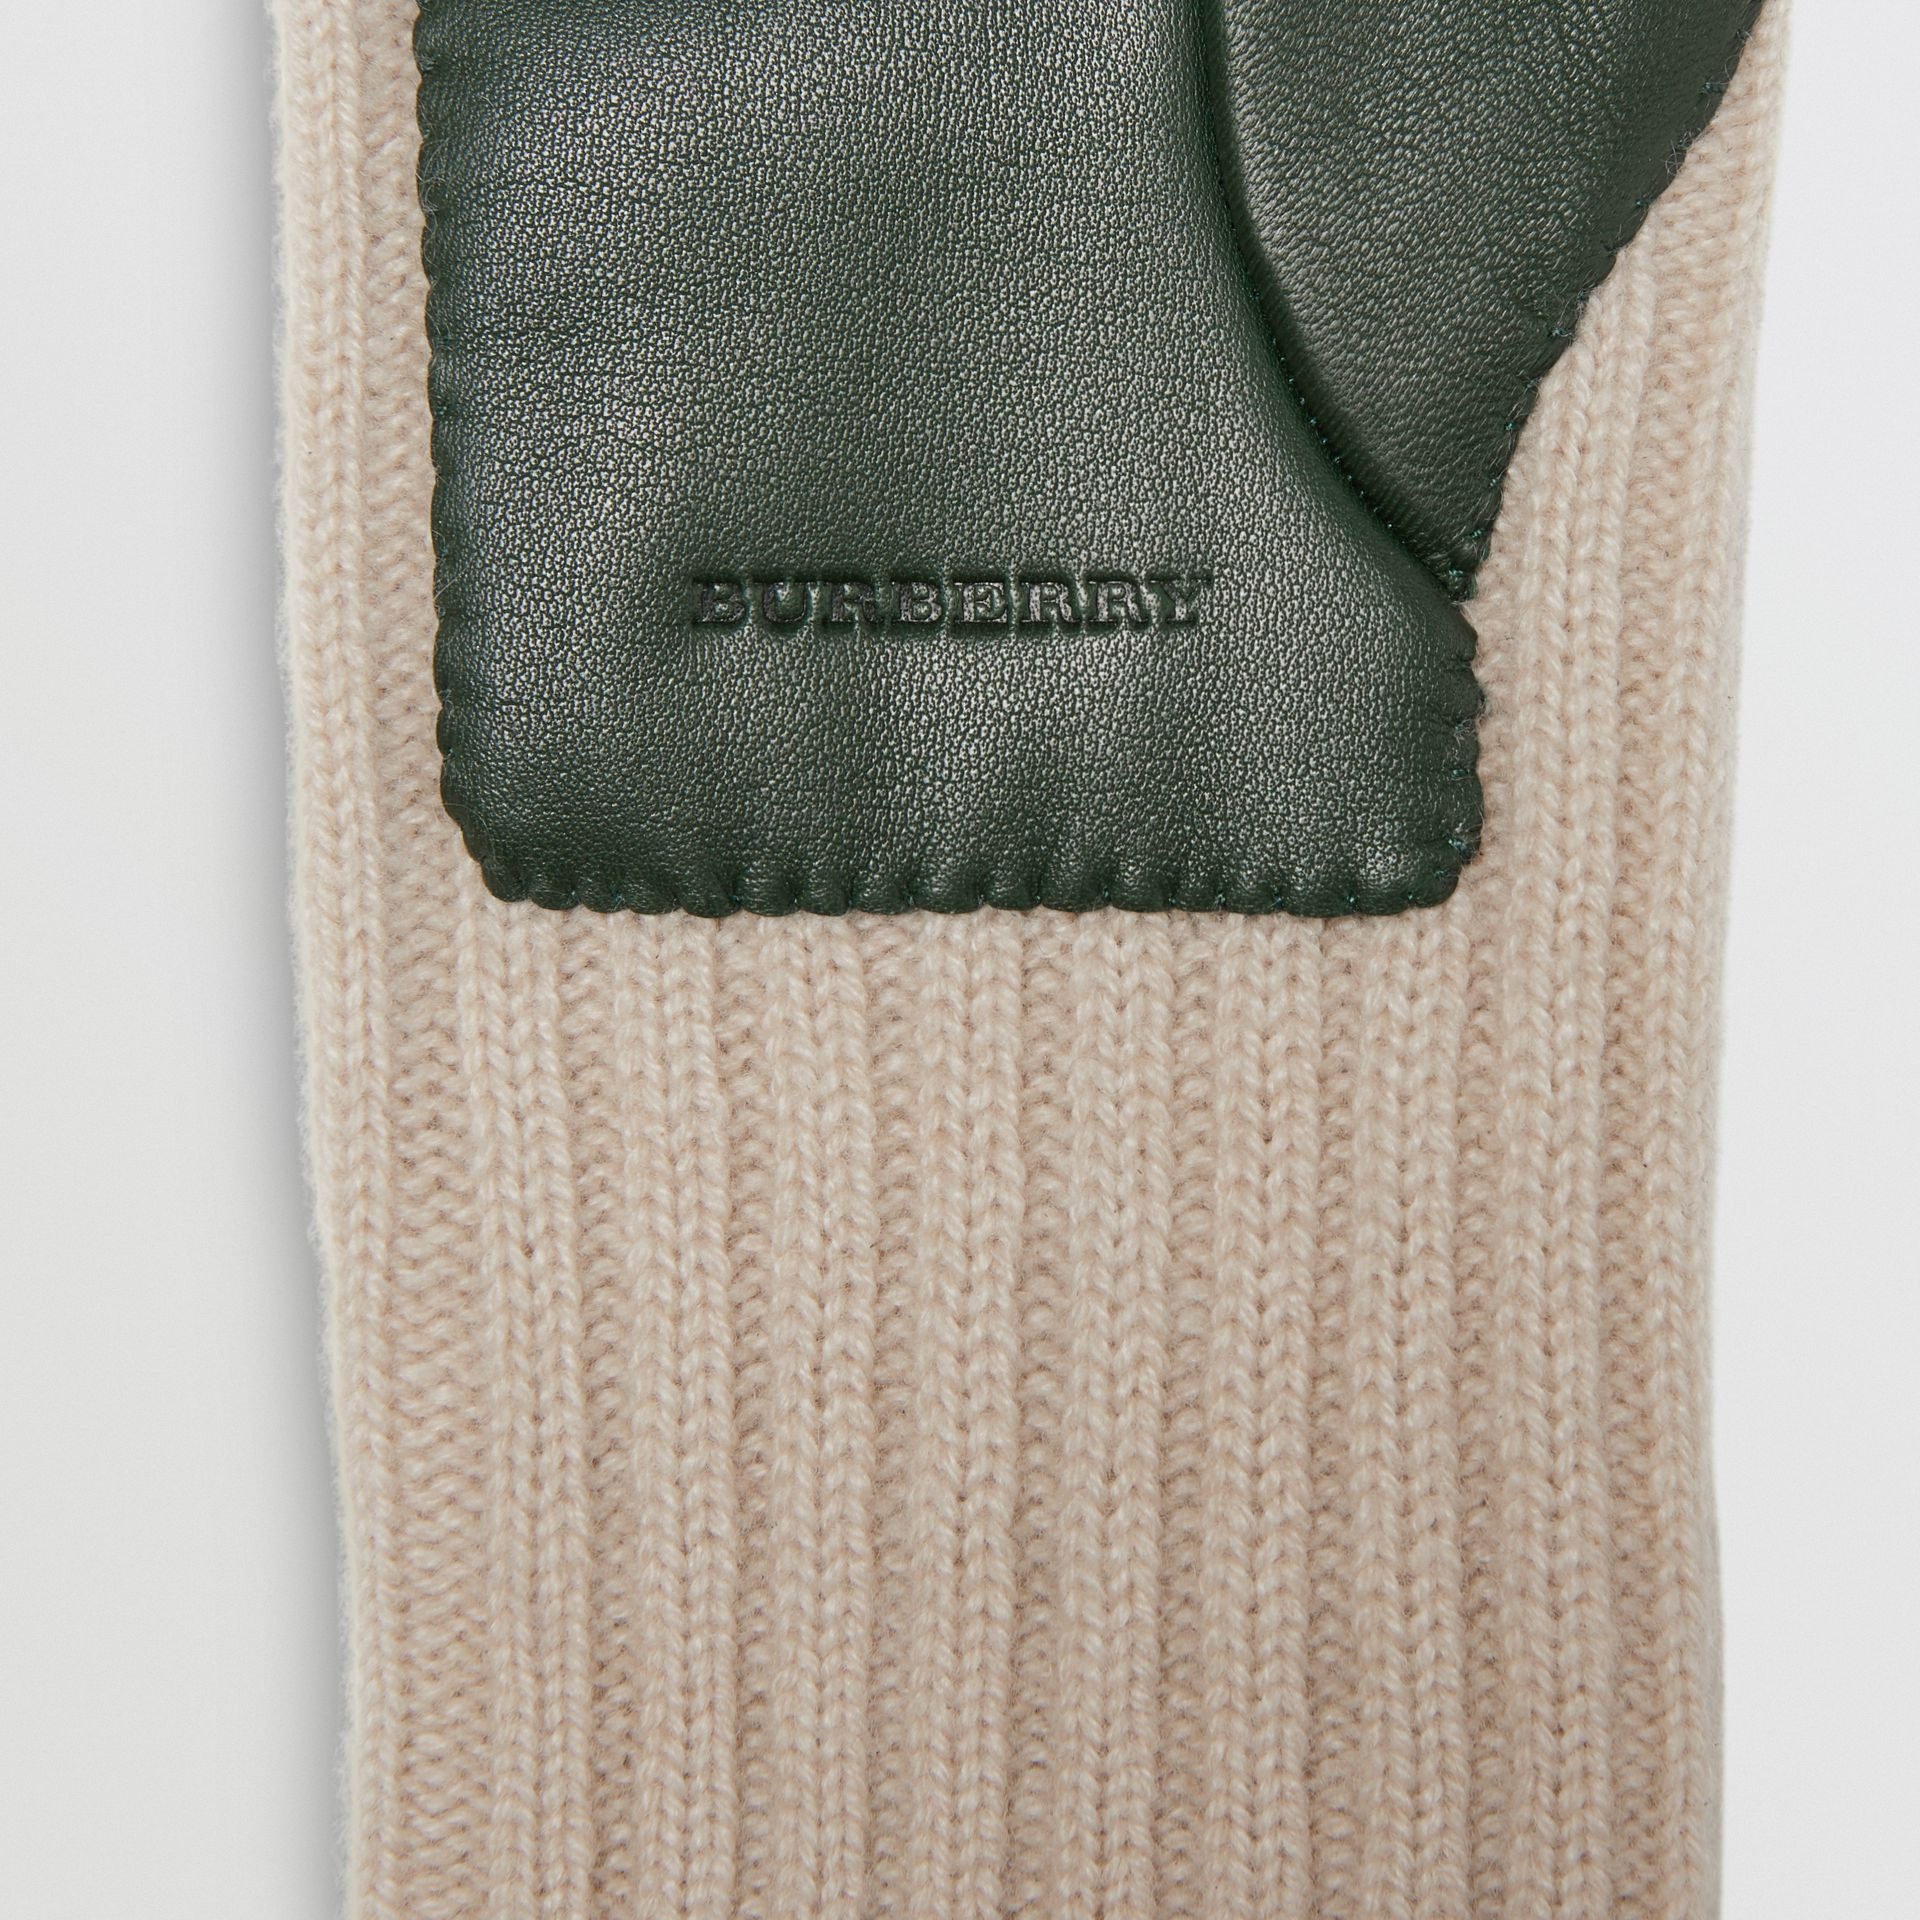 Cashmere and Lambskin Gloves in Dark Forest Green/ White - Women | Burberry - gallery image 1